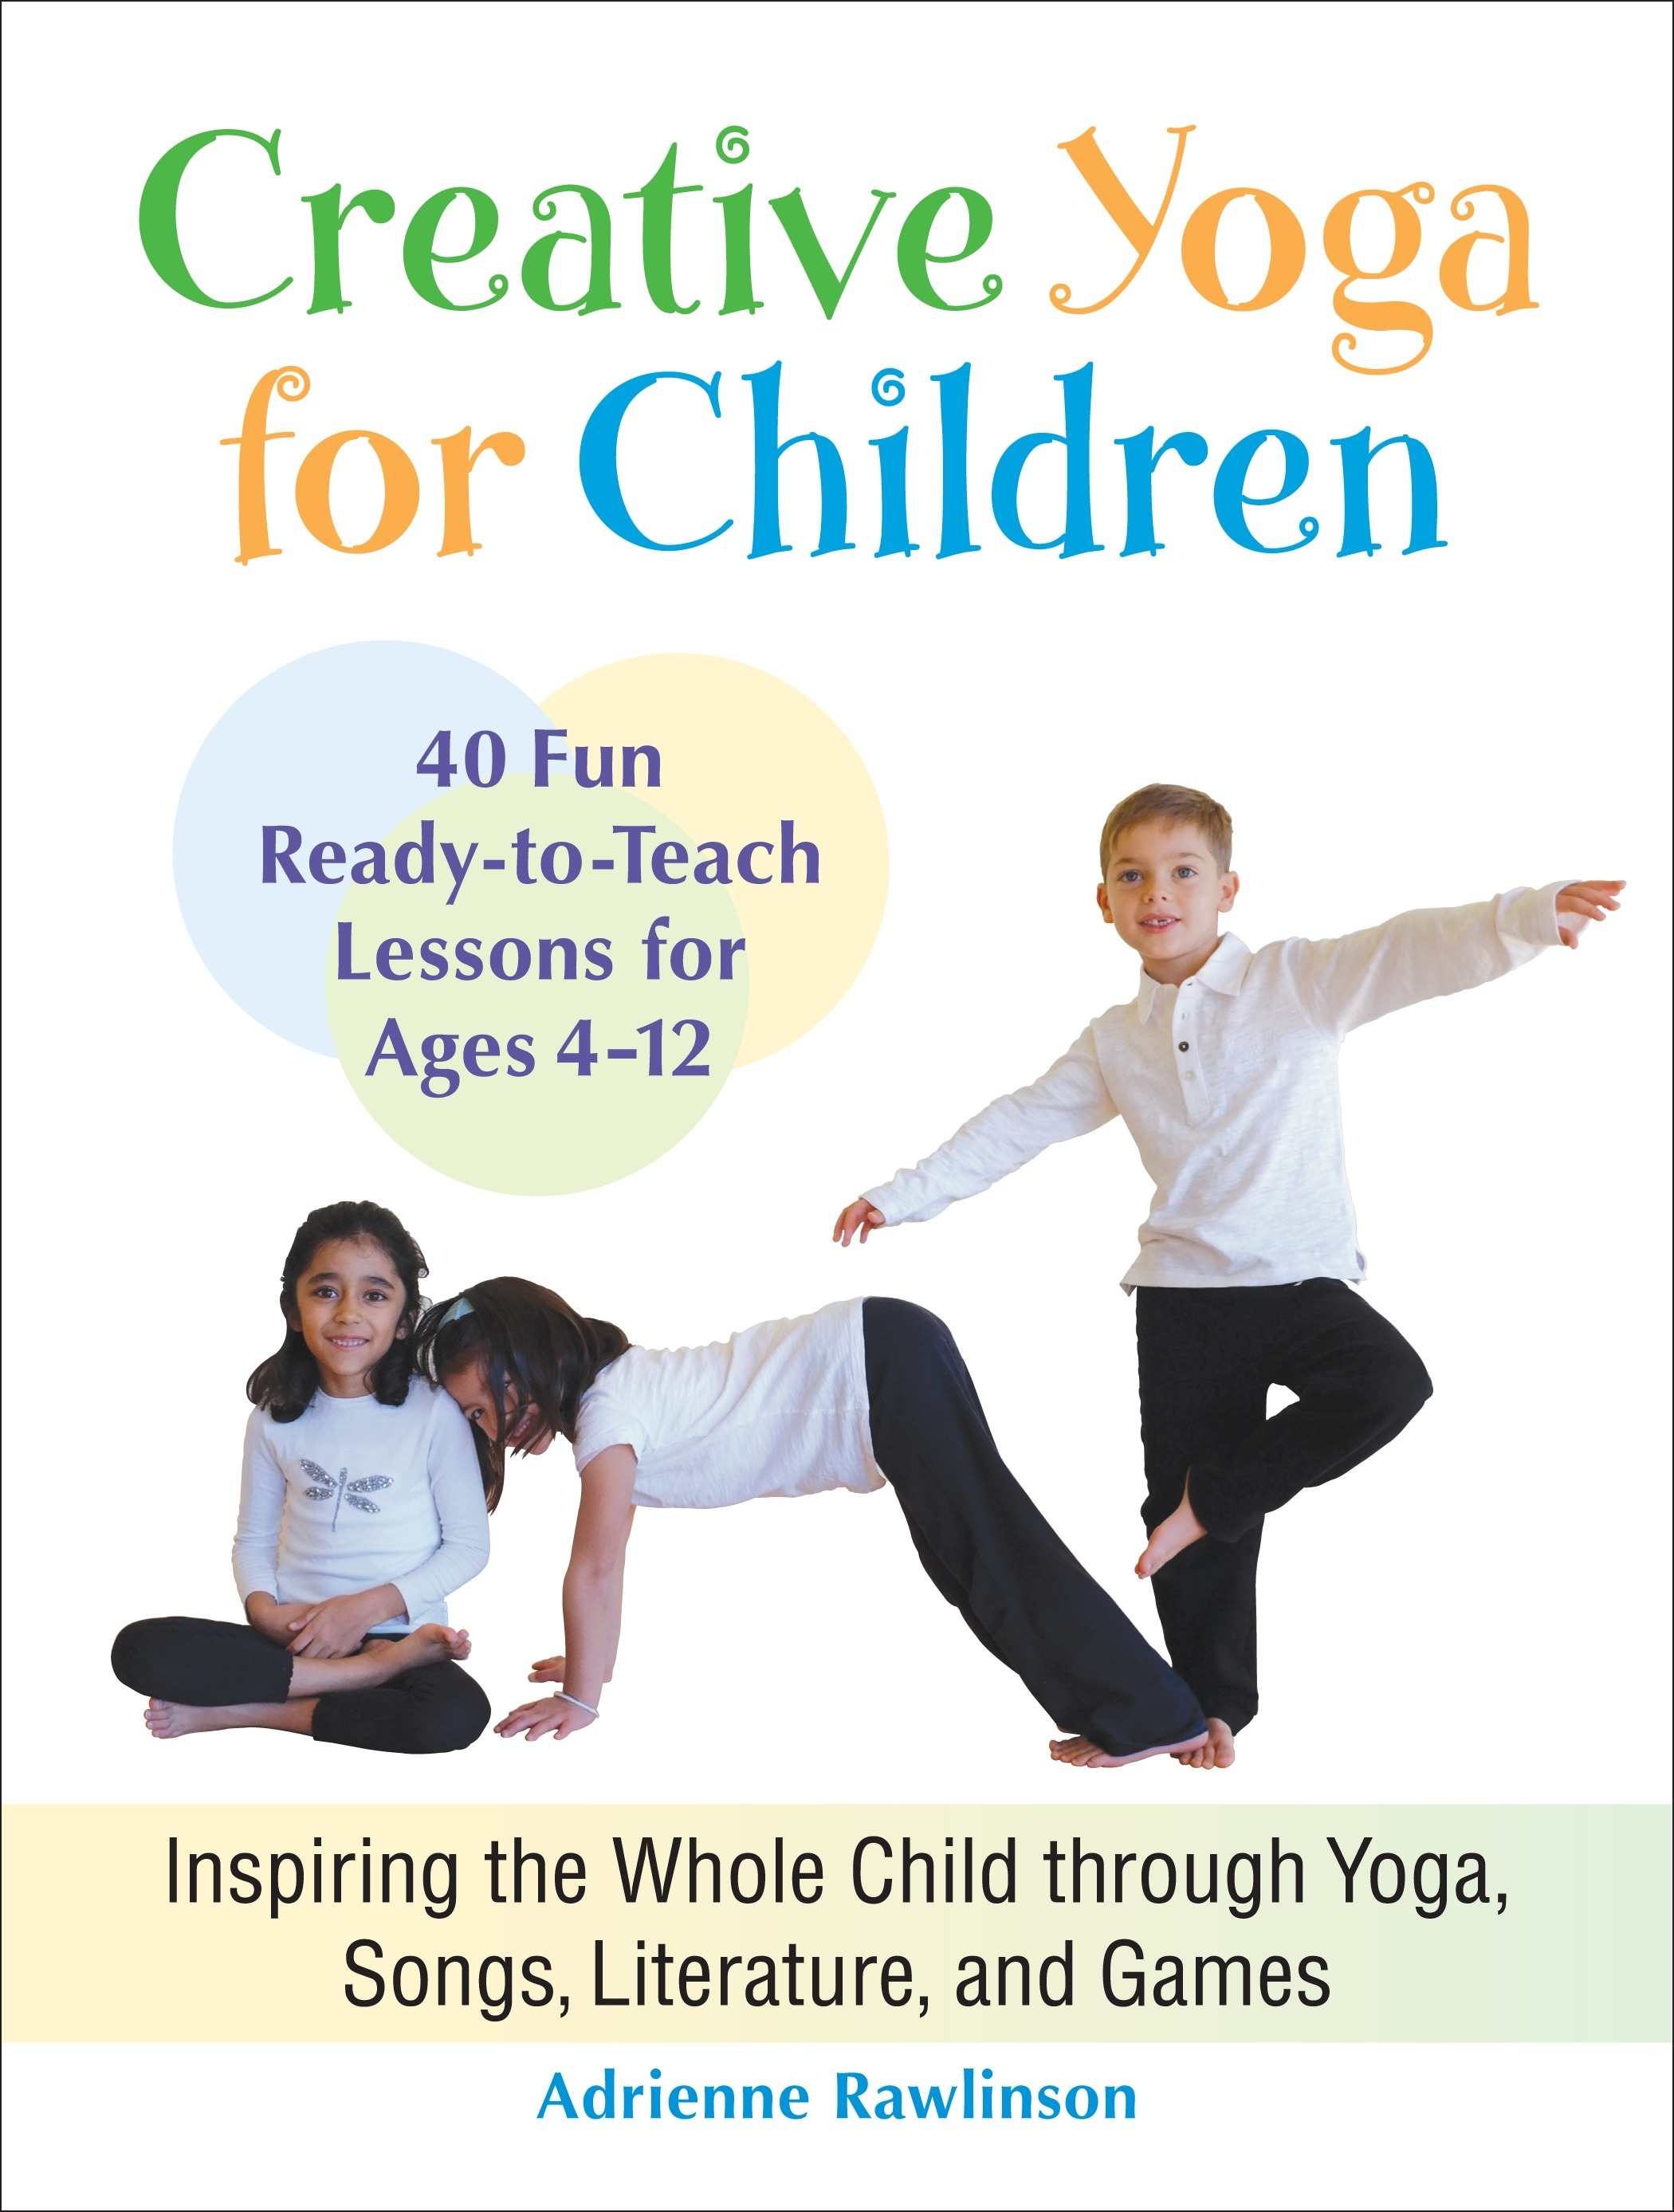 Creative Book Cover For Kids : Creative yoga for children by adrienne rawlinson penguin